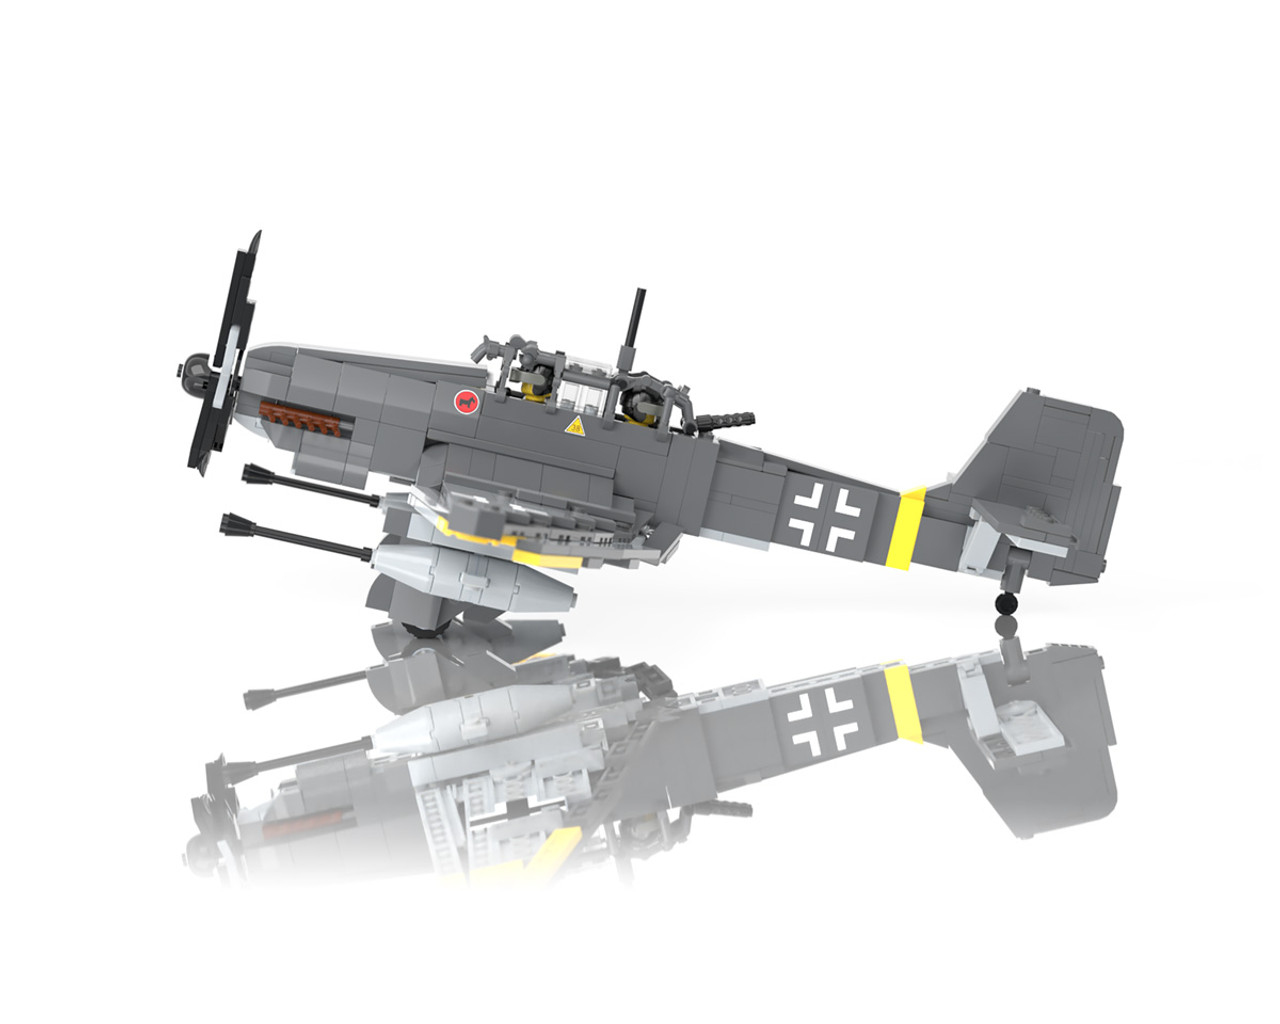 small resolution of ju87 g 2 stuka wwii ground attack aircraft